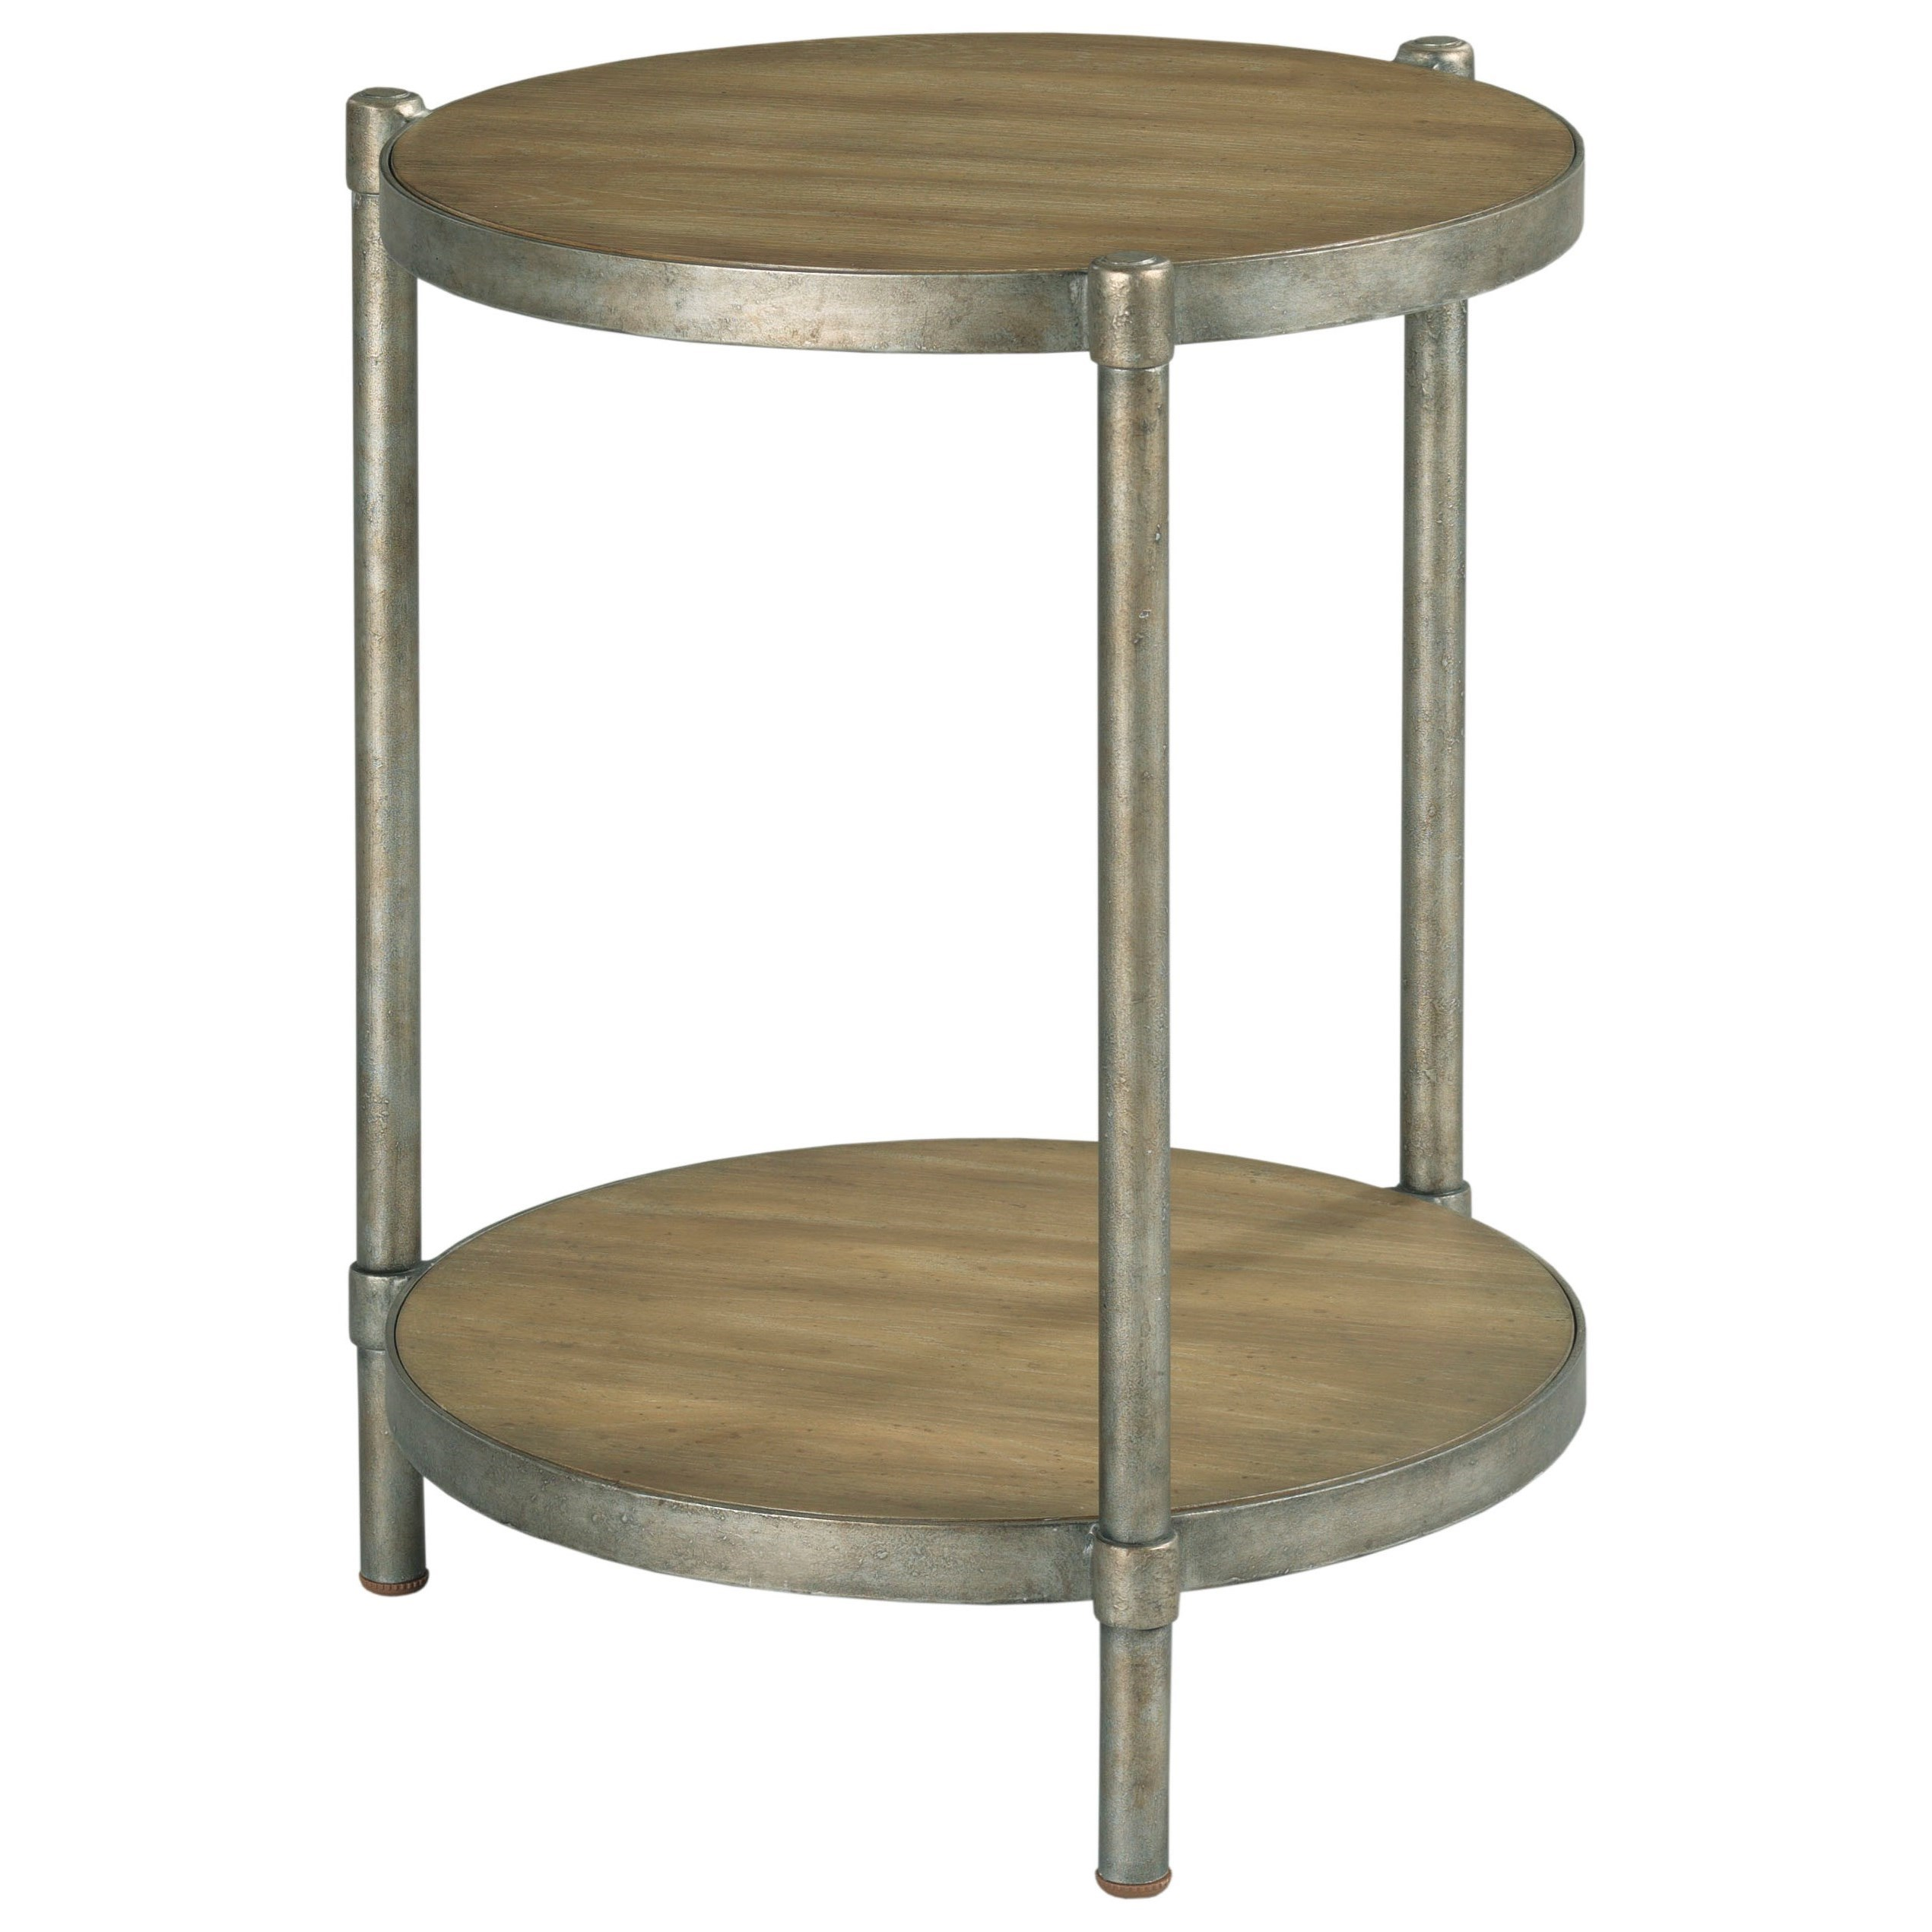 Astor Round Accent Table by Hammary at Alison Craig Home Furnishings